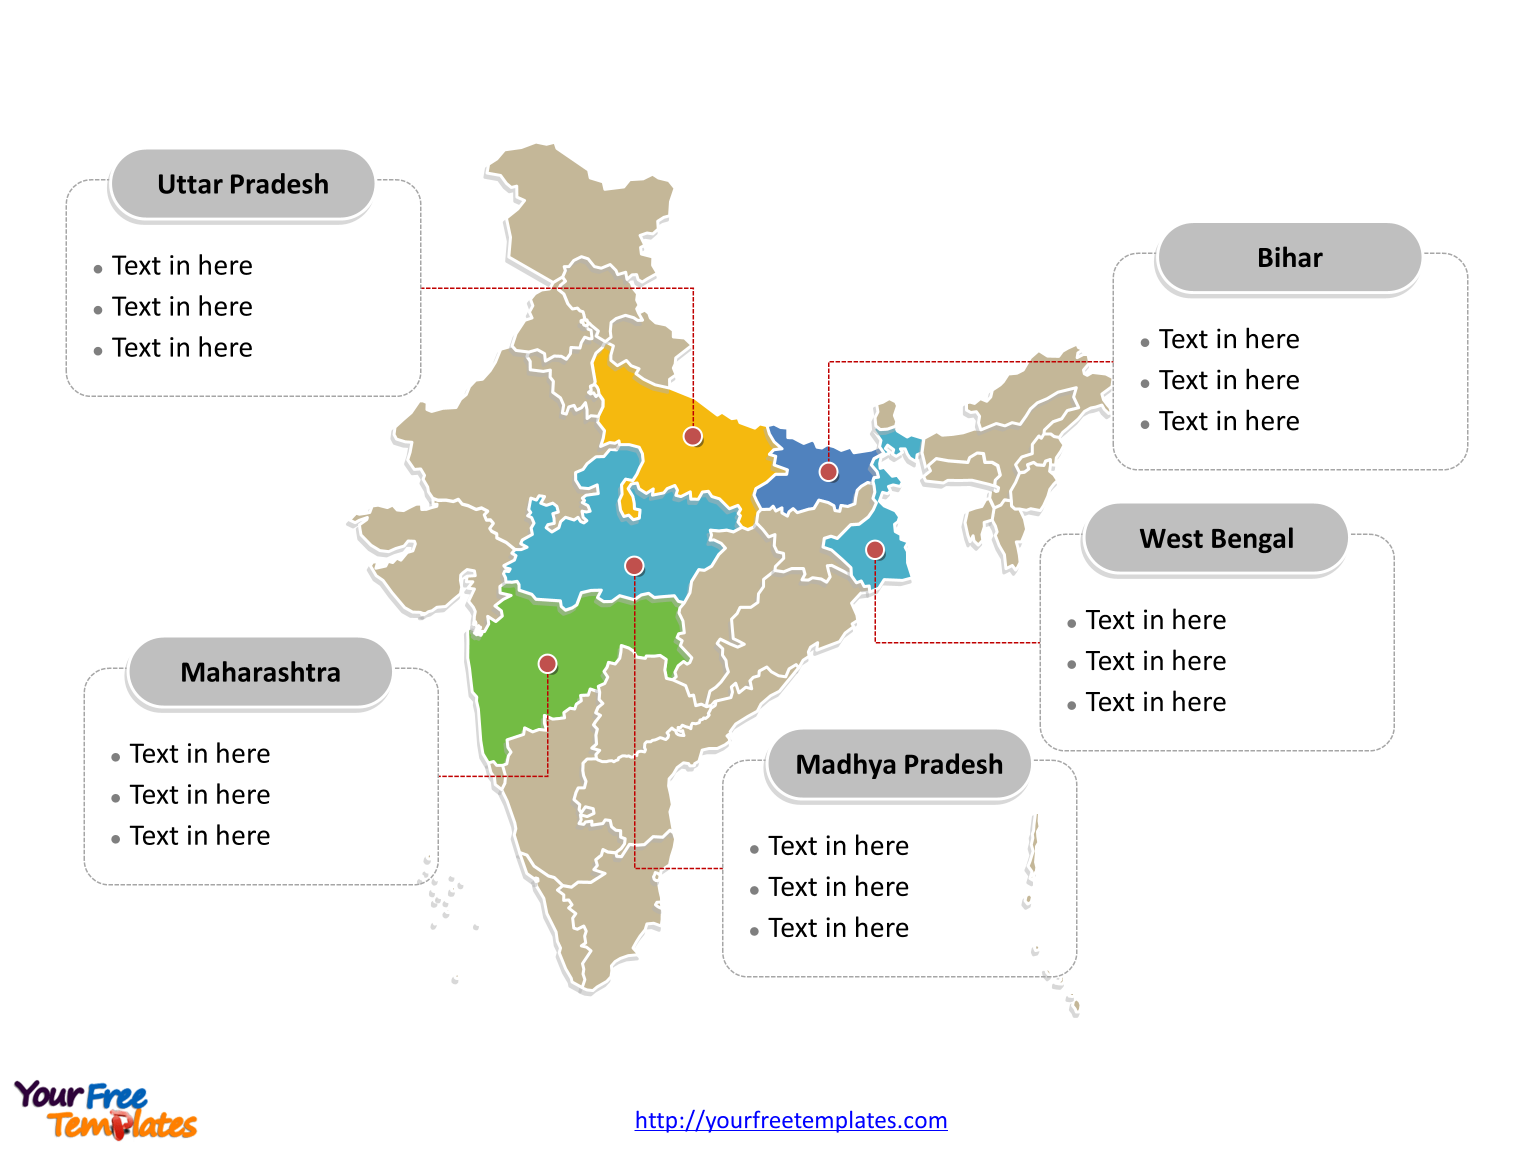 India map blank templates free powerpoint templates map of india with political division and major states labeled on the india map blank templates gumiabroncs Gallery